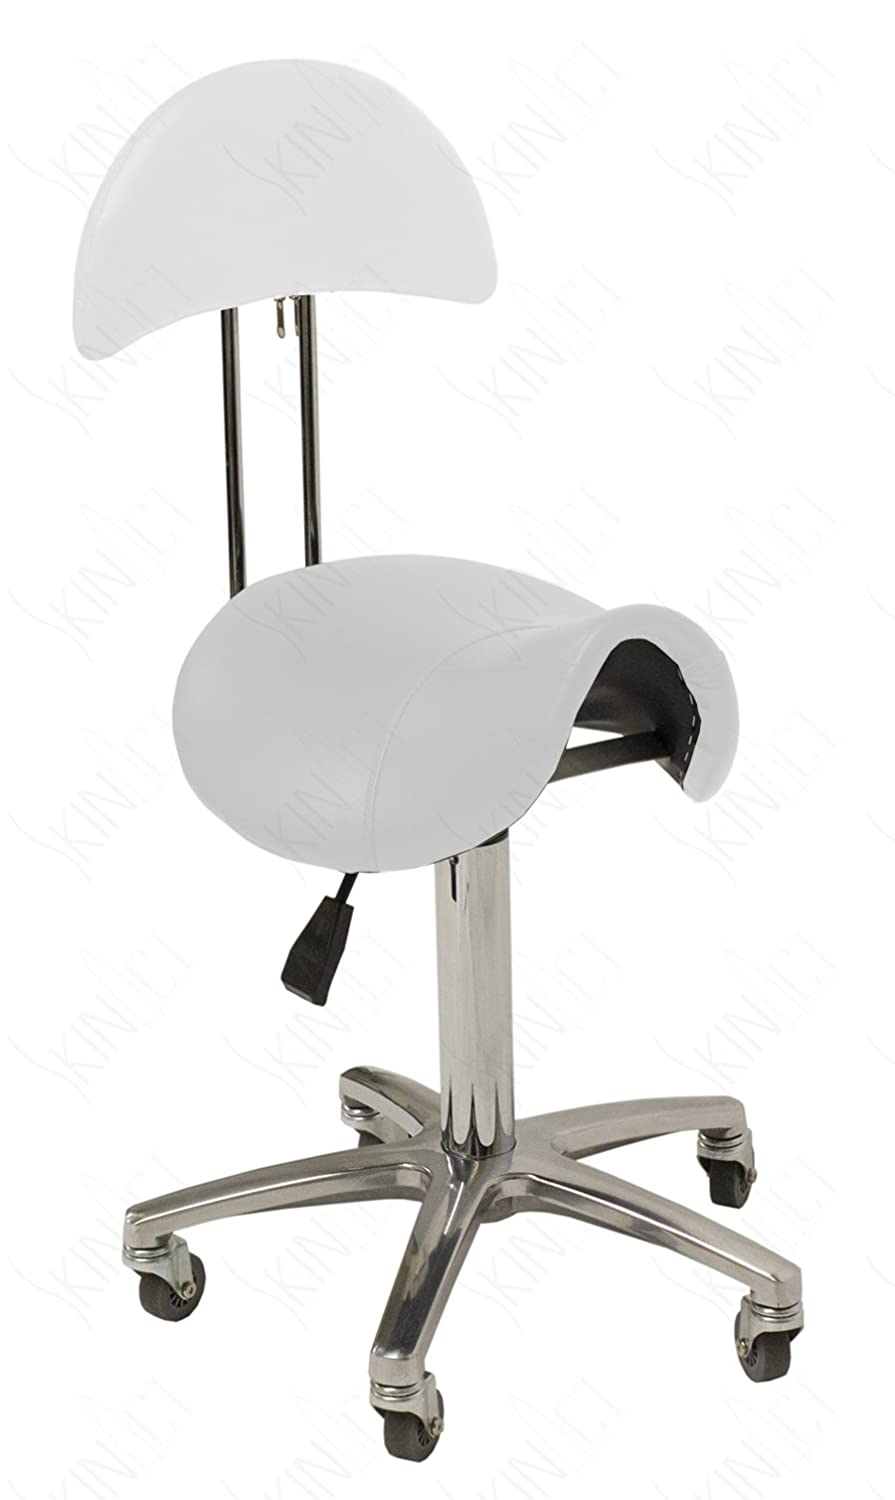 Amazon.com Hydraulic Saddle Stool with Back Salon Stool Spa Equipment Kitchen u0026 Dining  sc 1 st  Amazon.com & Amazon.com: Hydraulic Saddle Stool with Back Salon Stool Spa ... islam-shia.org